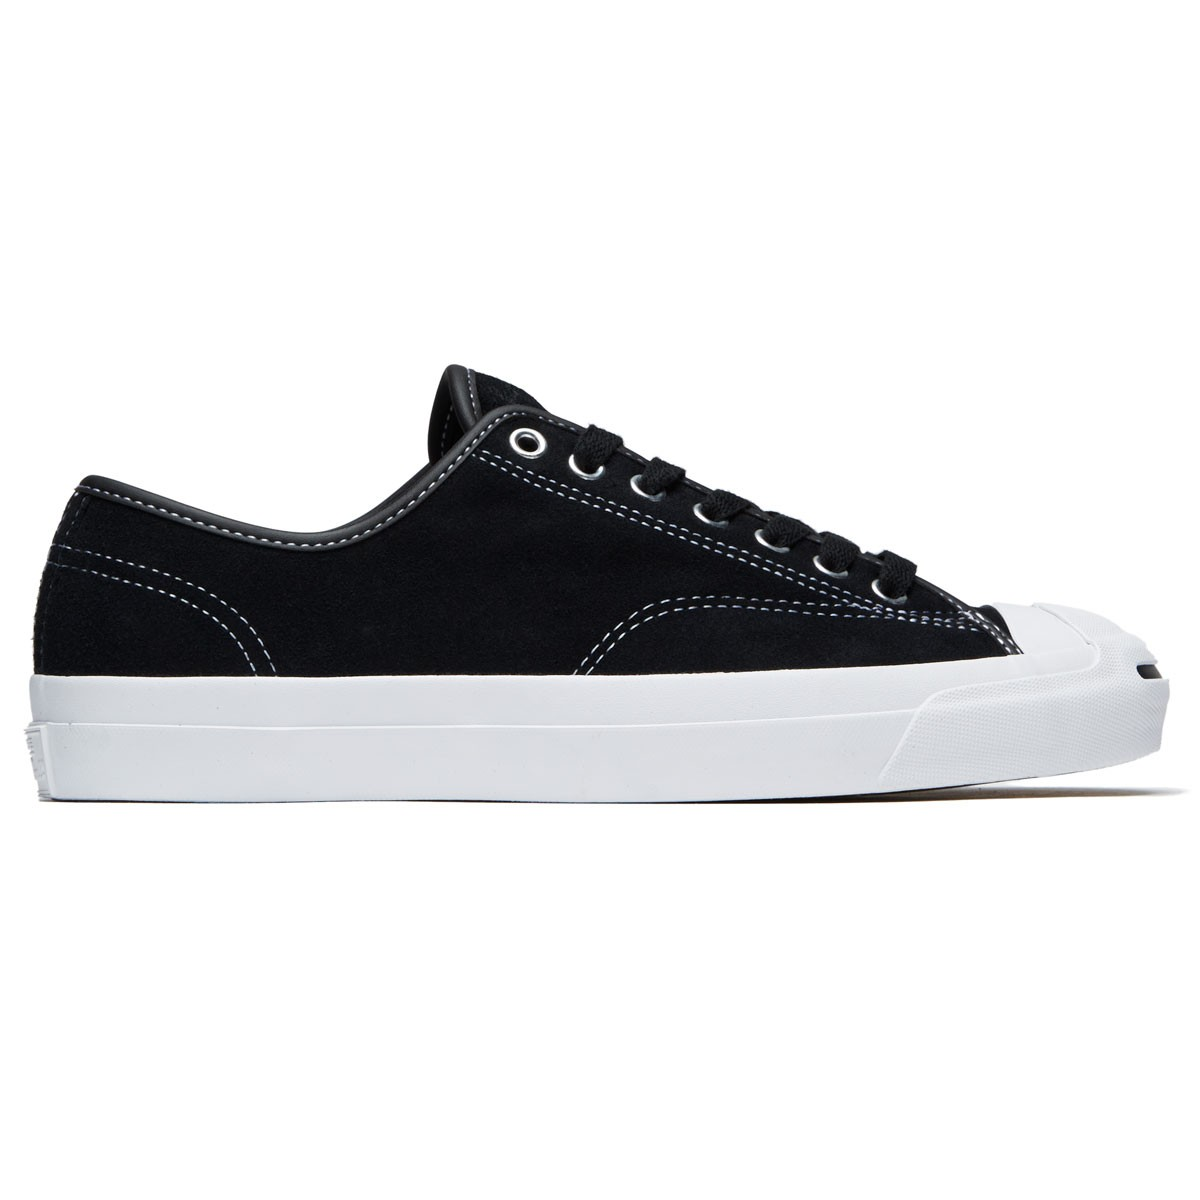 Converse Jack Purcell Pro Shoes - Black Black White Suede - 7.0 69a6f6872